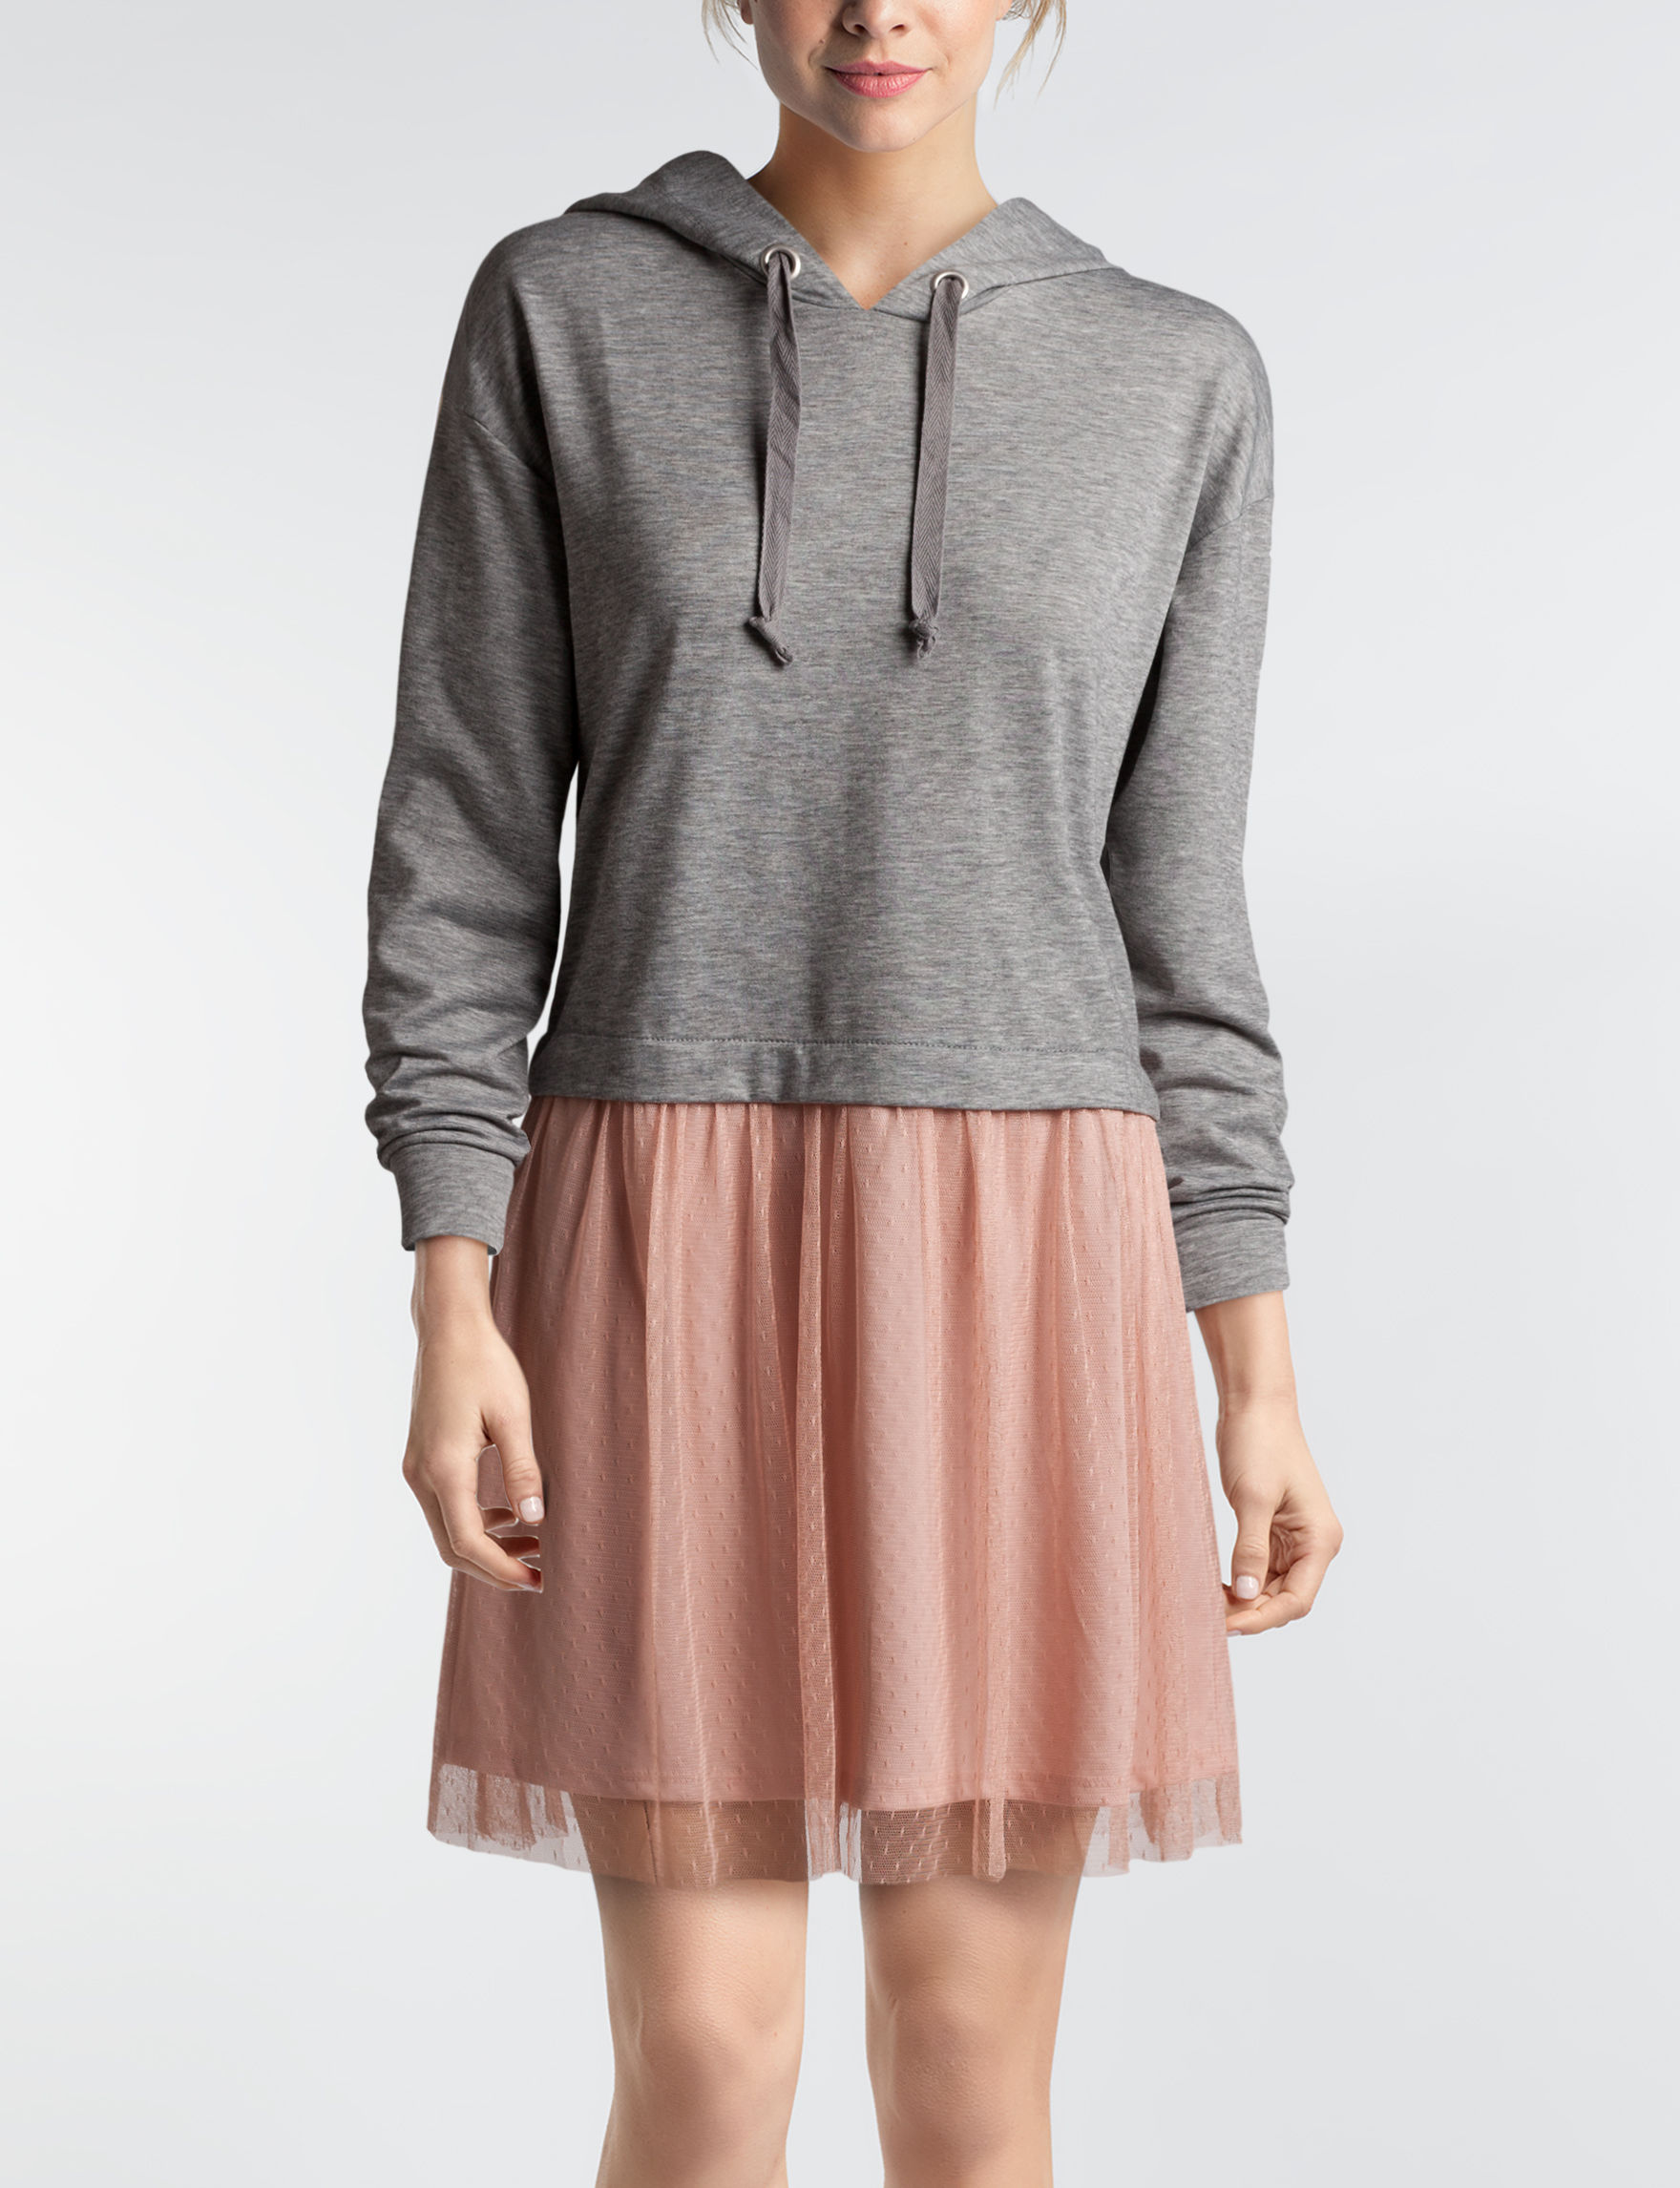 BeBop Grey Everyday & Casual Fit & Flare Dresses